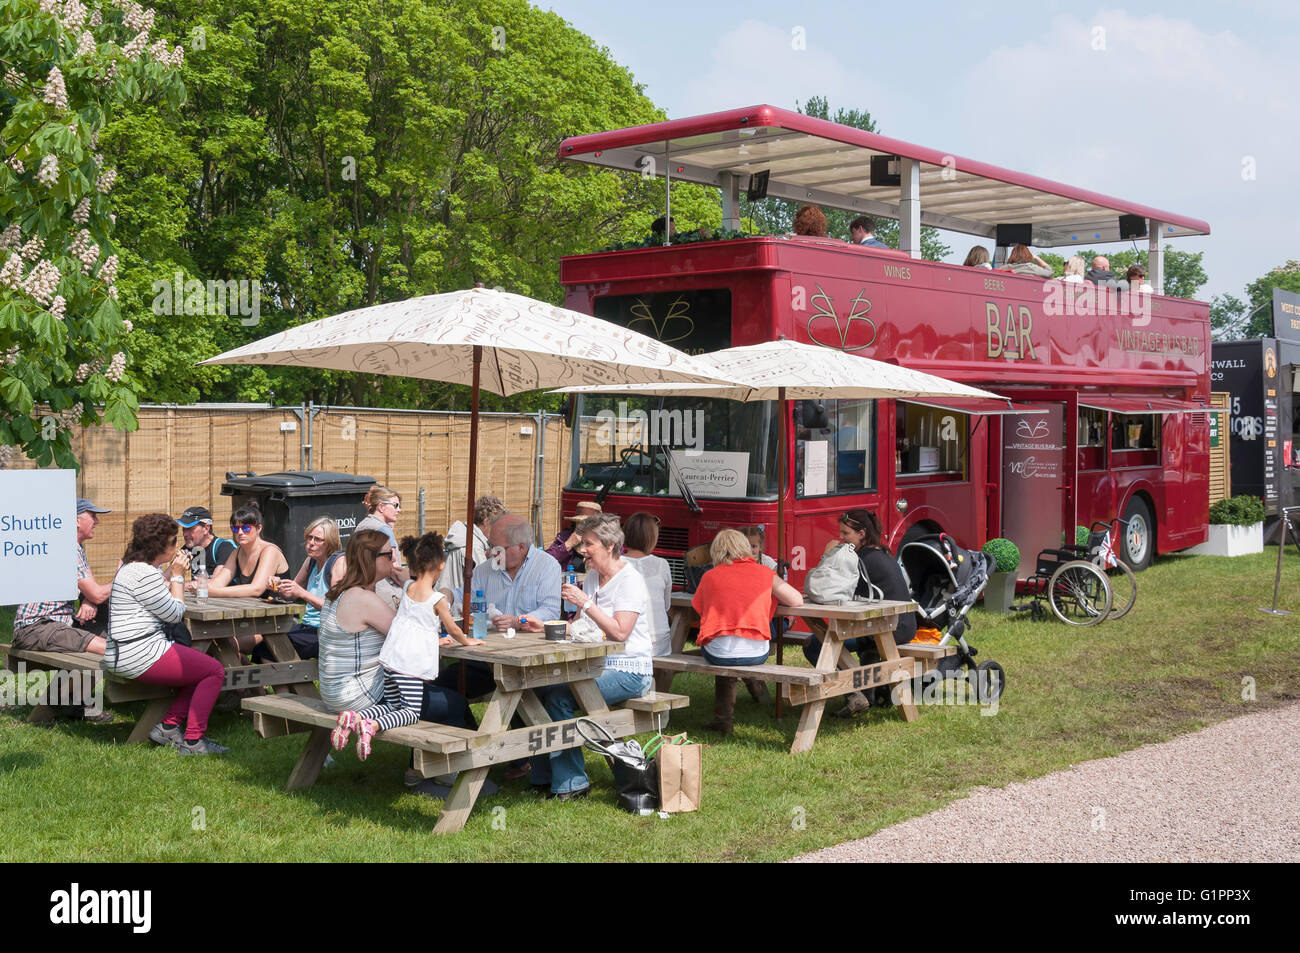 Vintage Bus Bar At Royal Windsor Horse Show Home Park Berkshire England United Kingdom